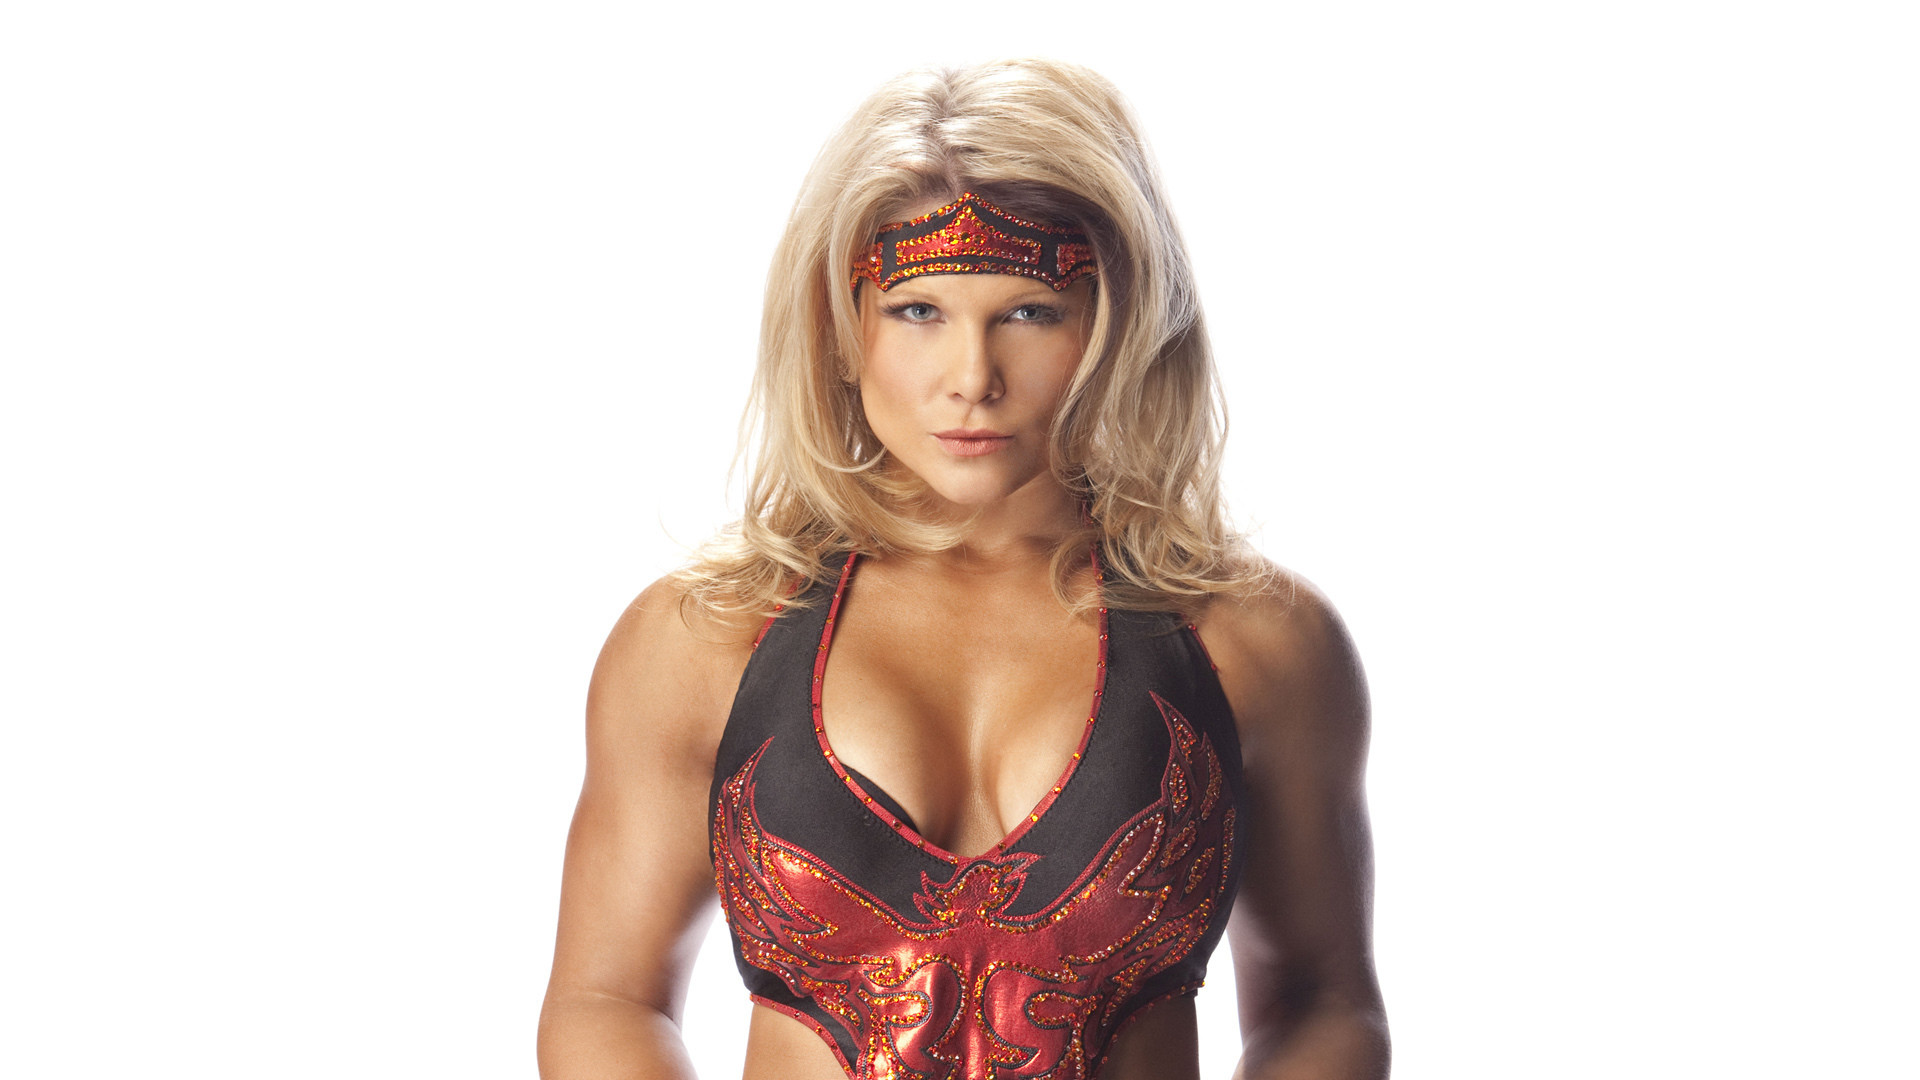 HD Wallpaper and background photos of Beth Phoenix for fans of WWE Divas  images.